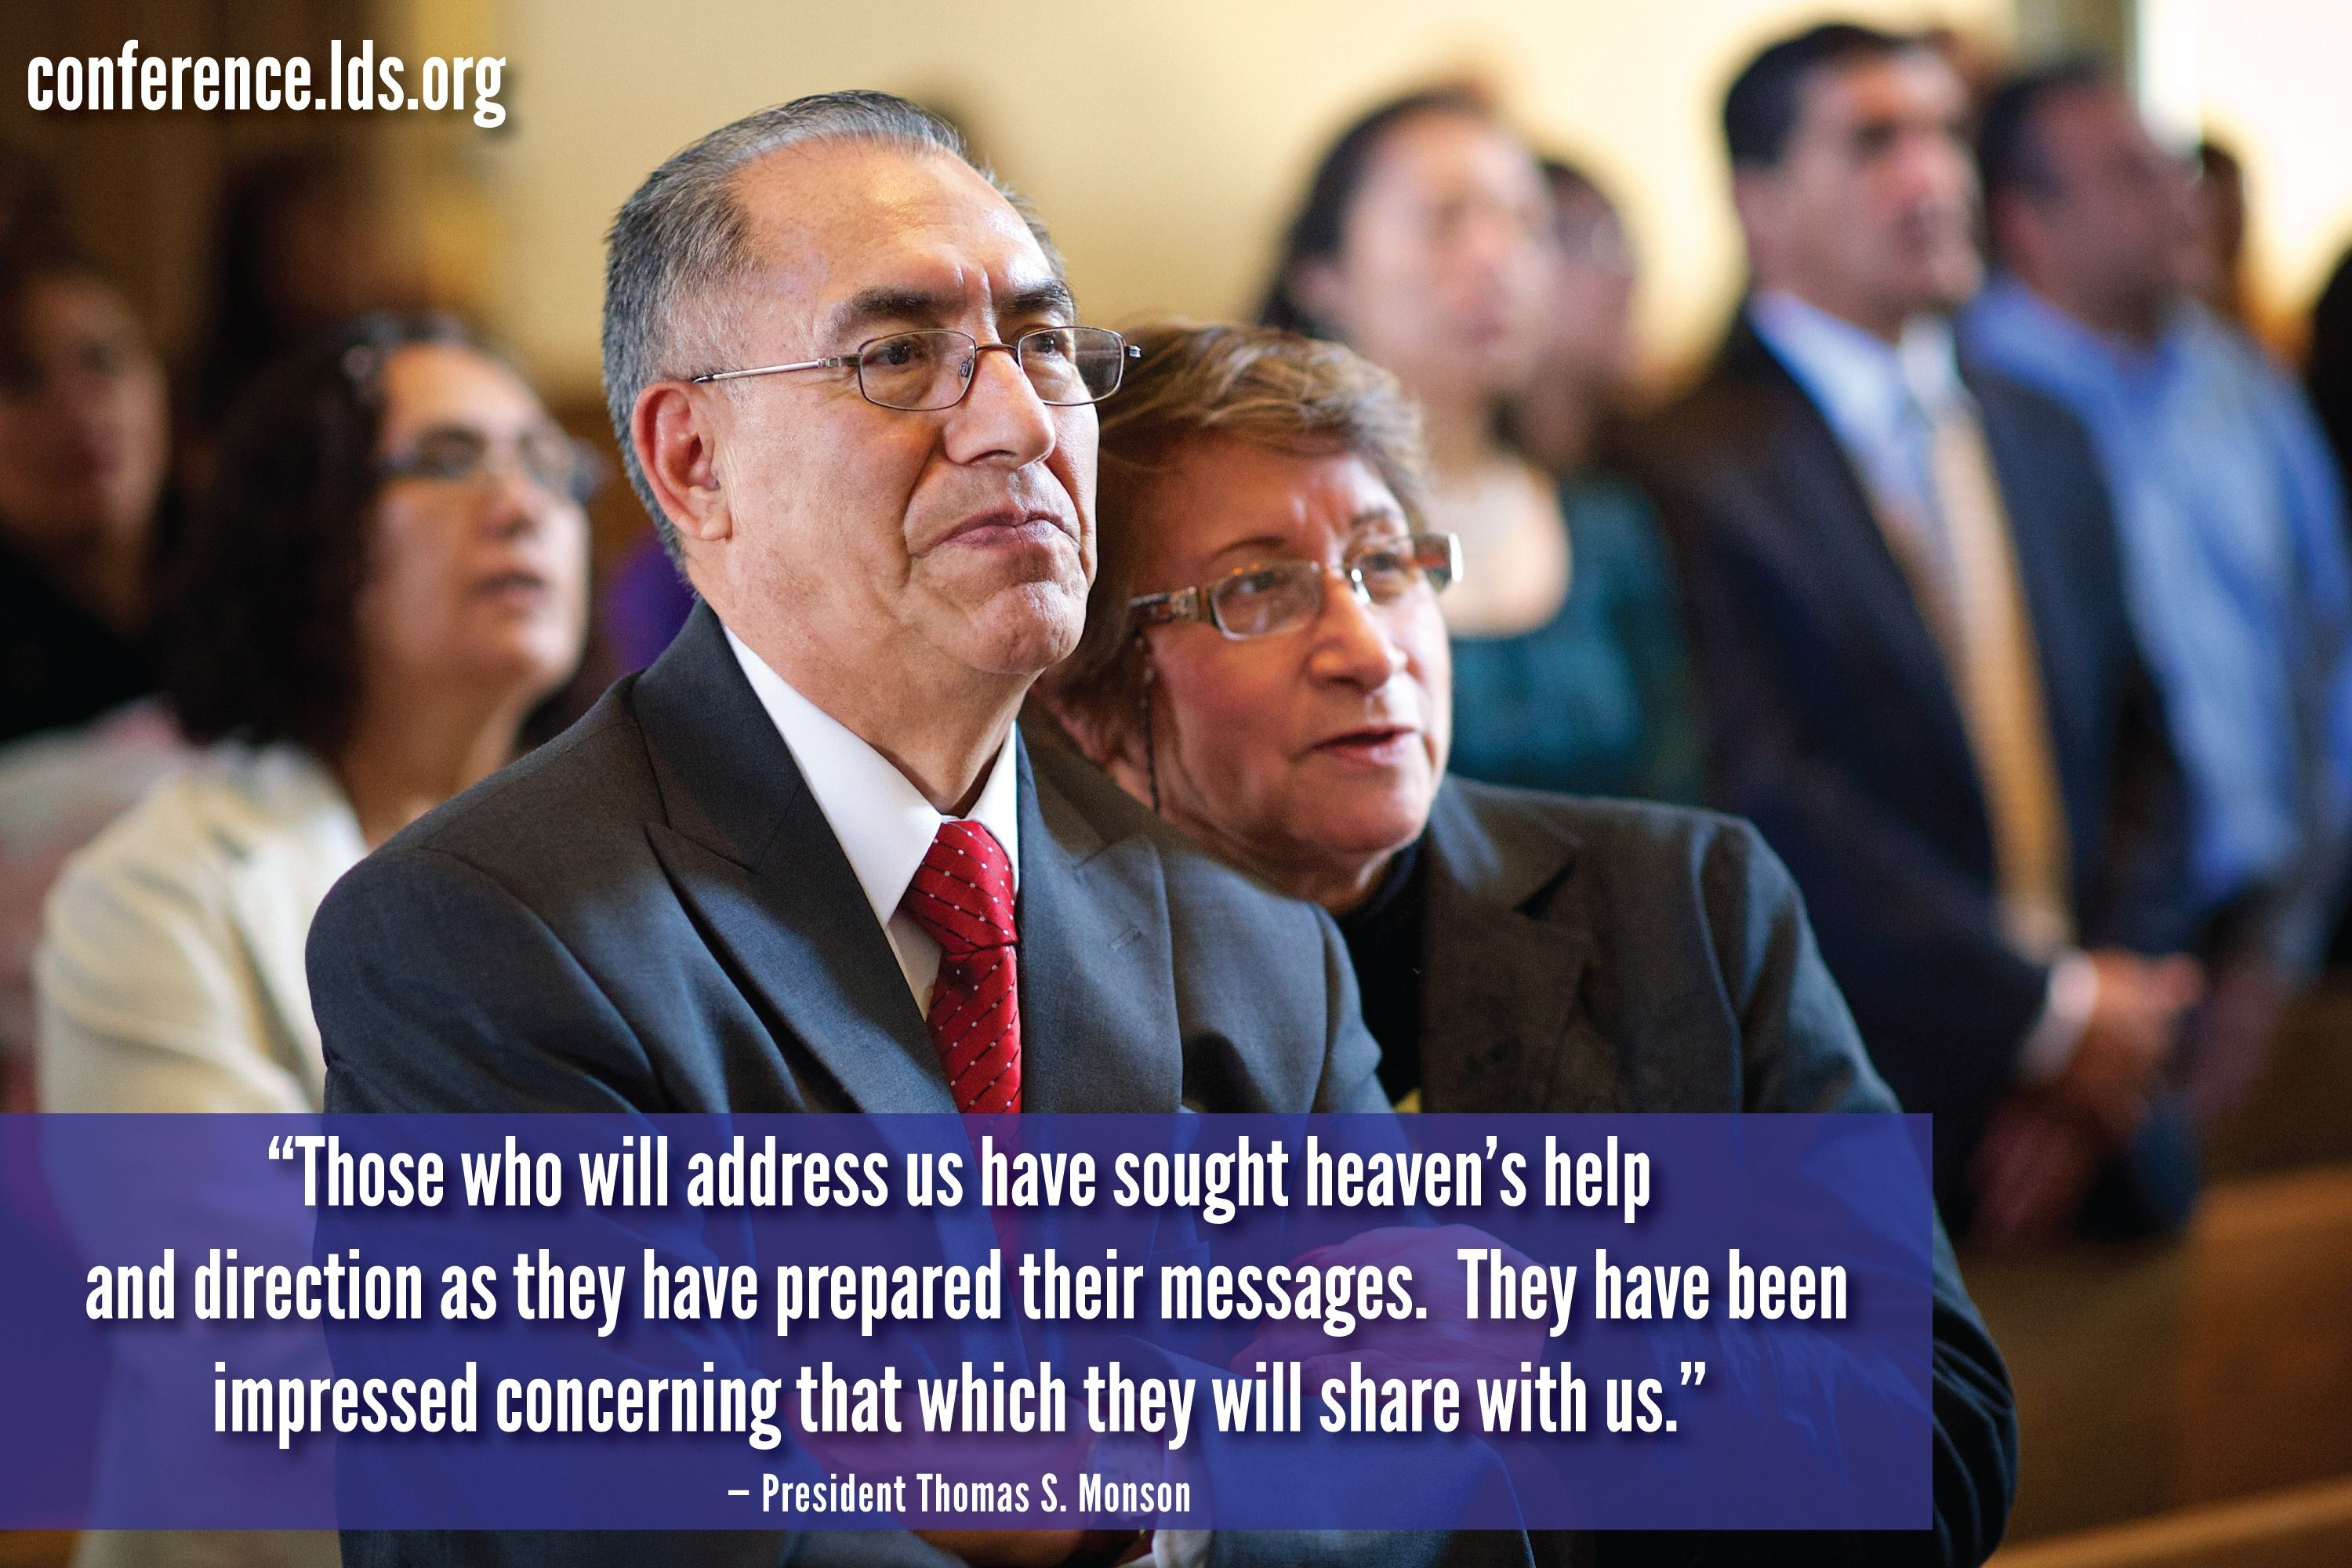 """""""Those who will address us have sought heaven's help and direction as they have prepared their messages. They have been impressed concerning that which they will share with us.""""—President Thomas S. Monson, """"Welcome to Conference"""""""